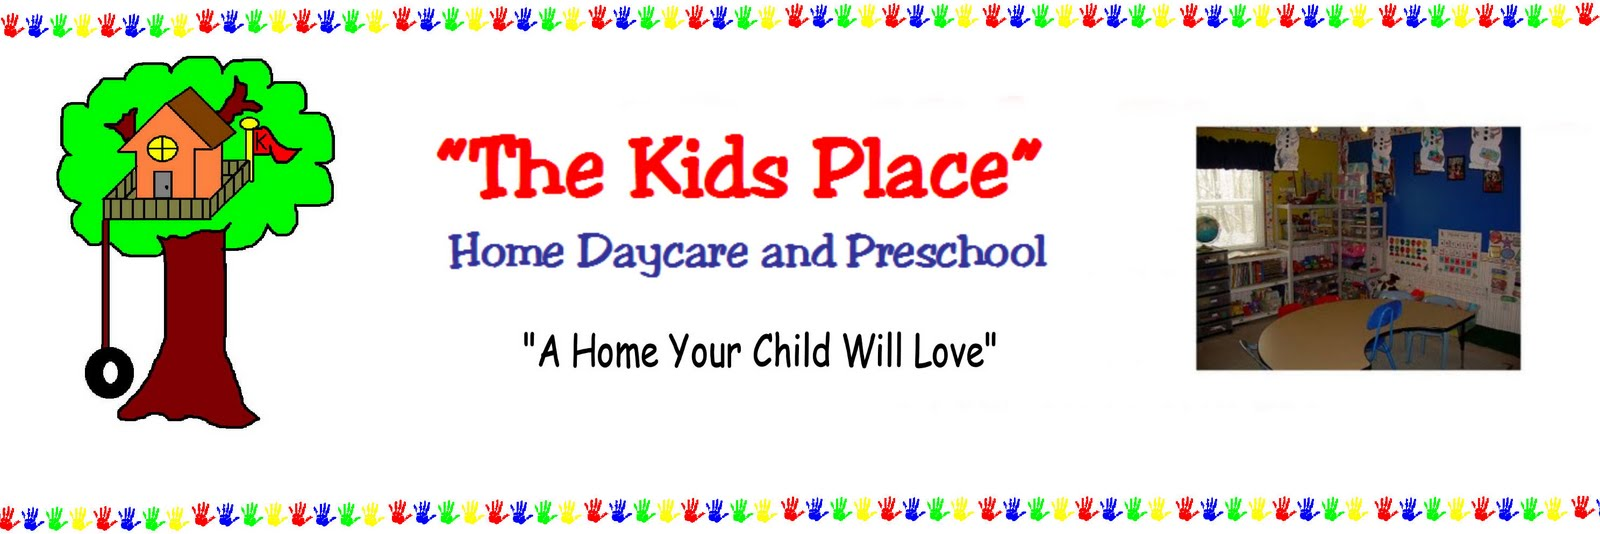 """The Kids Place"" Home Daycare and Preschool"